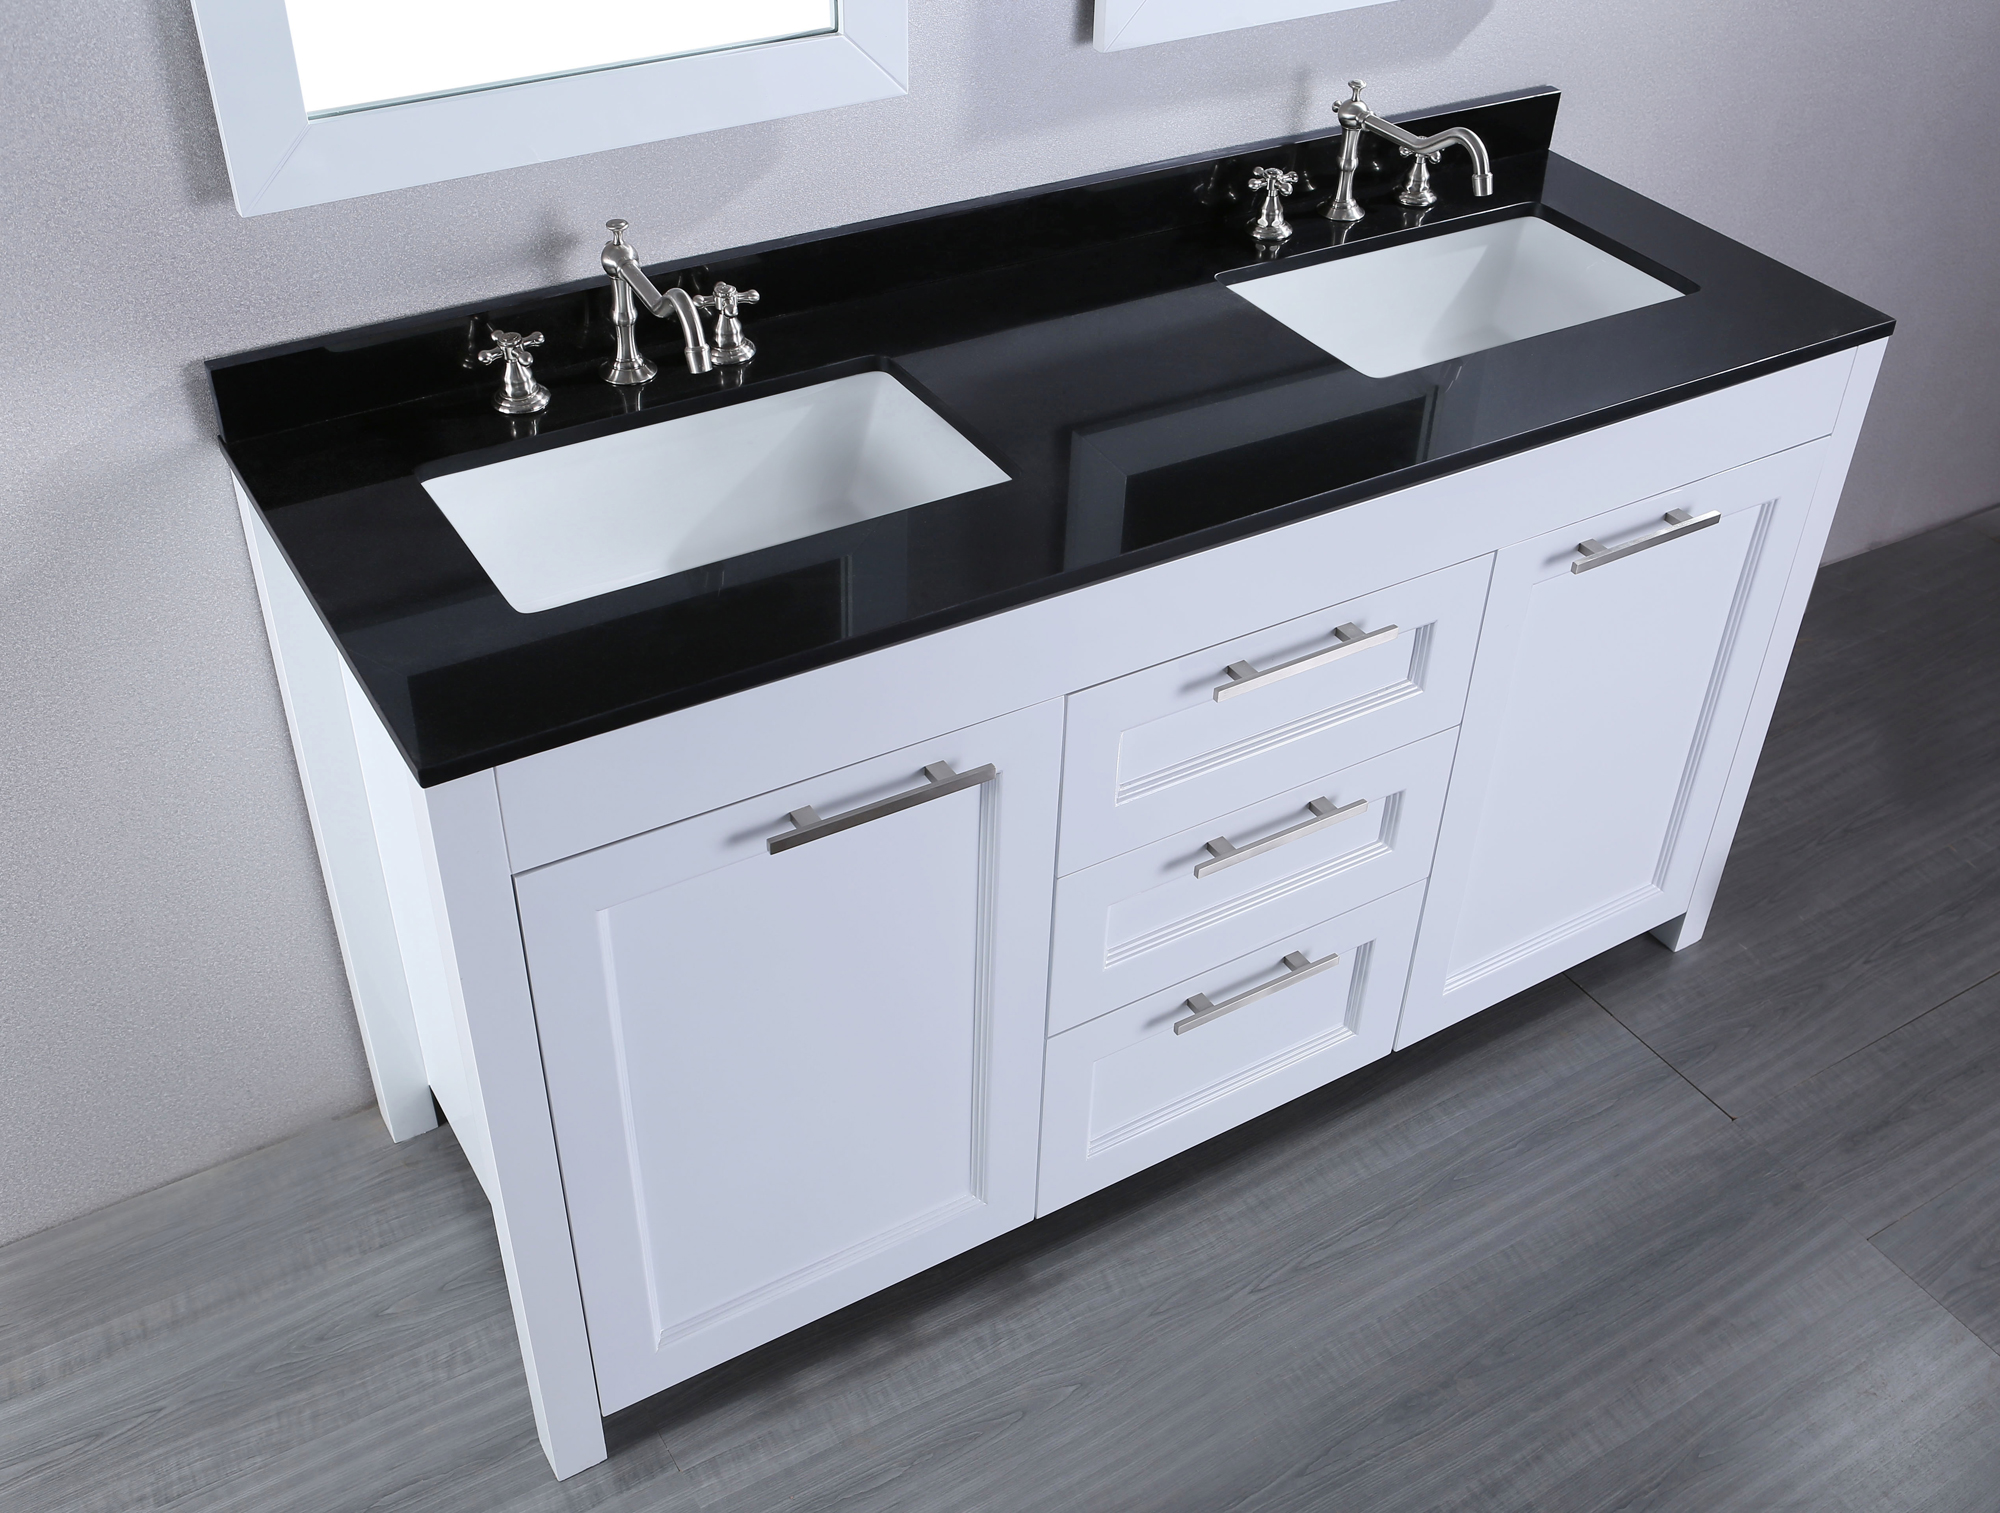 white wooden bathroom vanities with tops and double sinks and faucets on wooden floor for bathroom decor ideas